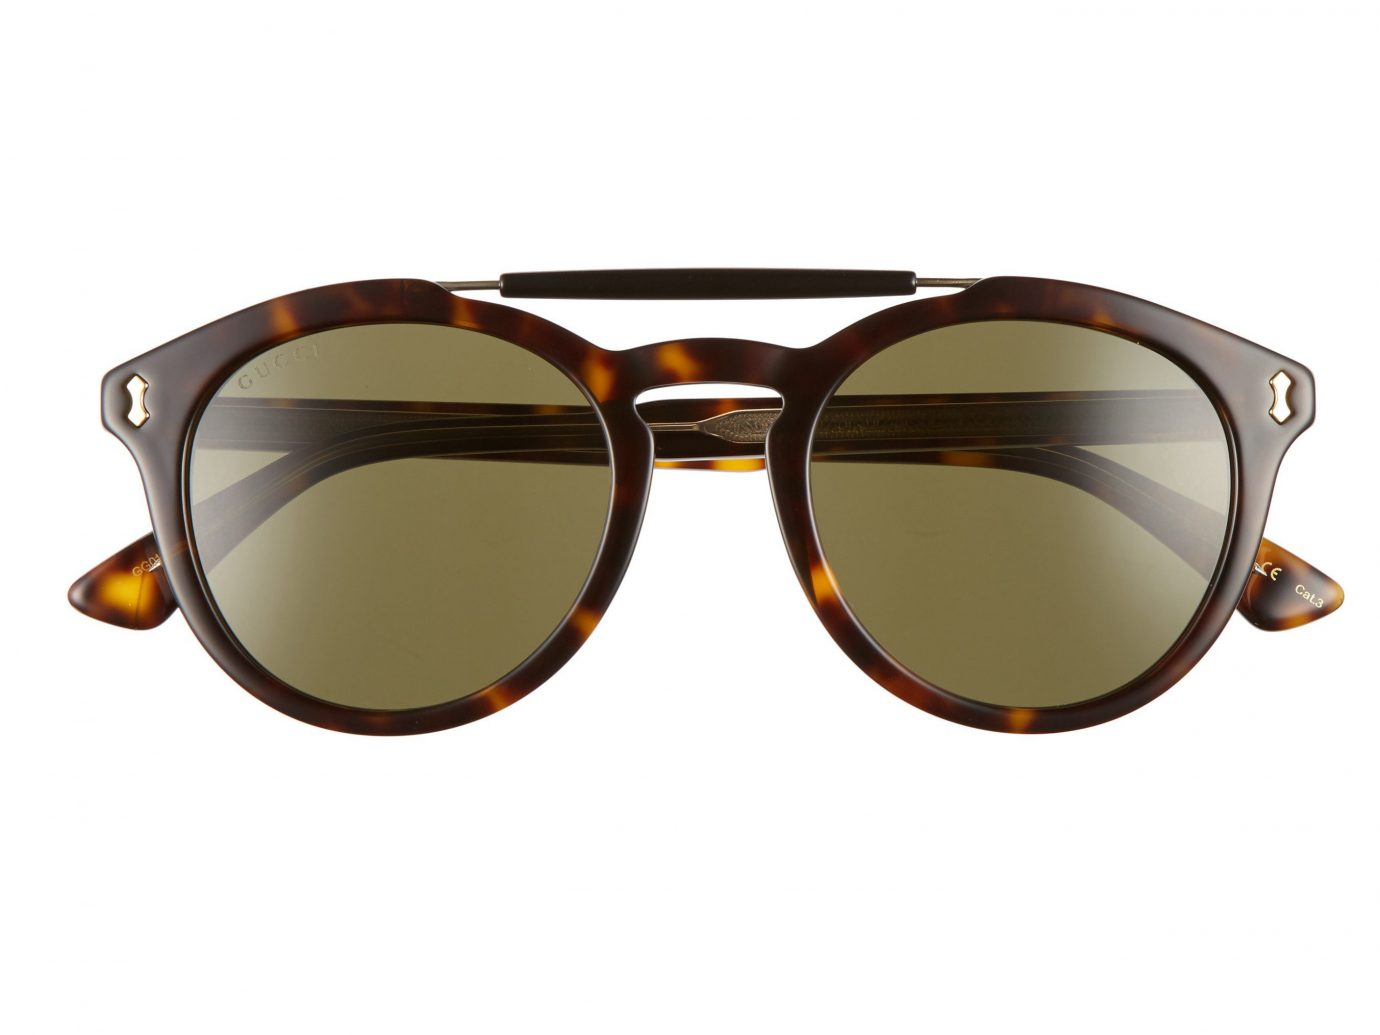 Hotels Style + Design Trip Ideas spectacles sunglasses eyewear accessory goggles mirror vision care glasses brown product hand glass product design personal protective equipment caramel color